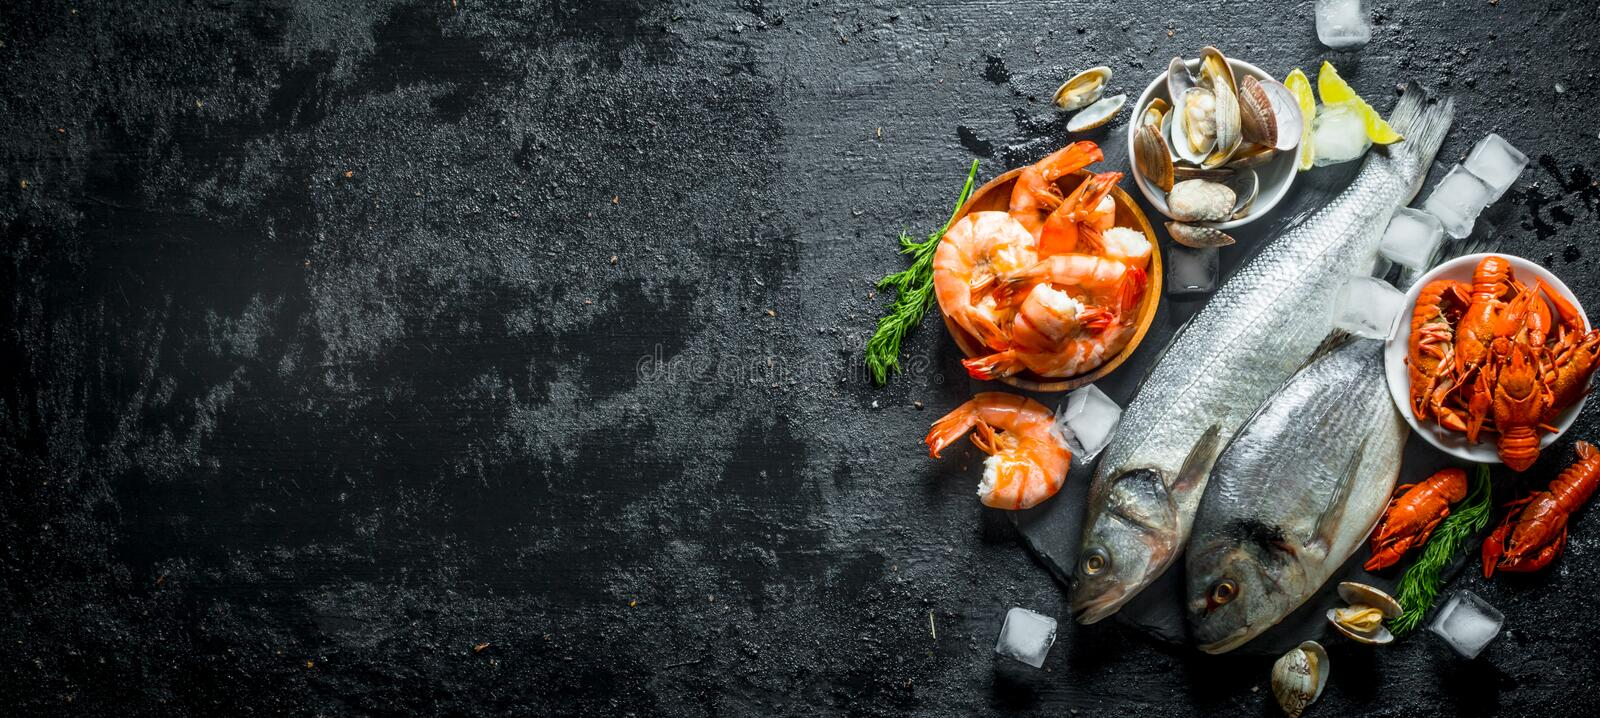 Raw fish and seafood on a stone Board with ice cubes and lime slices stock photo